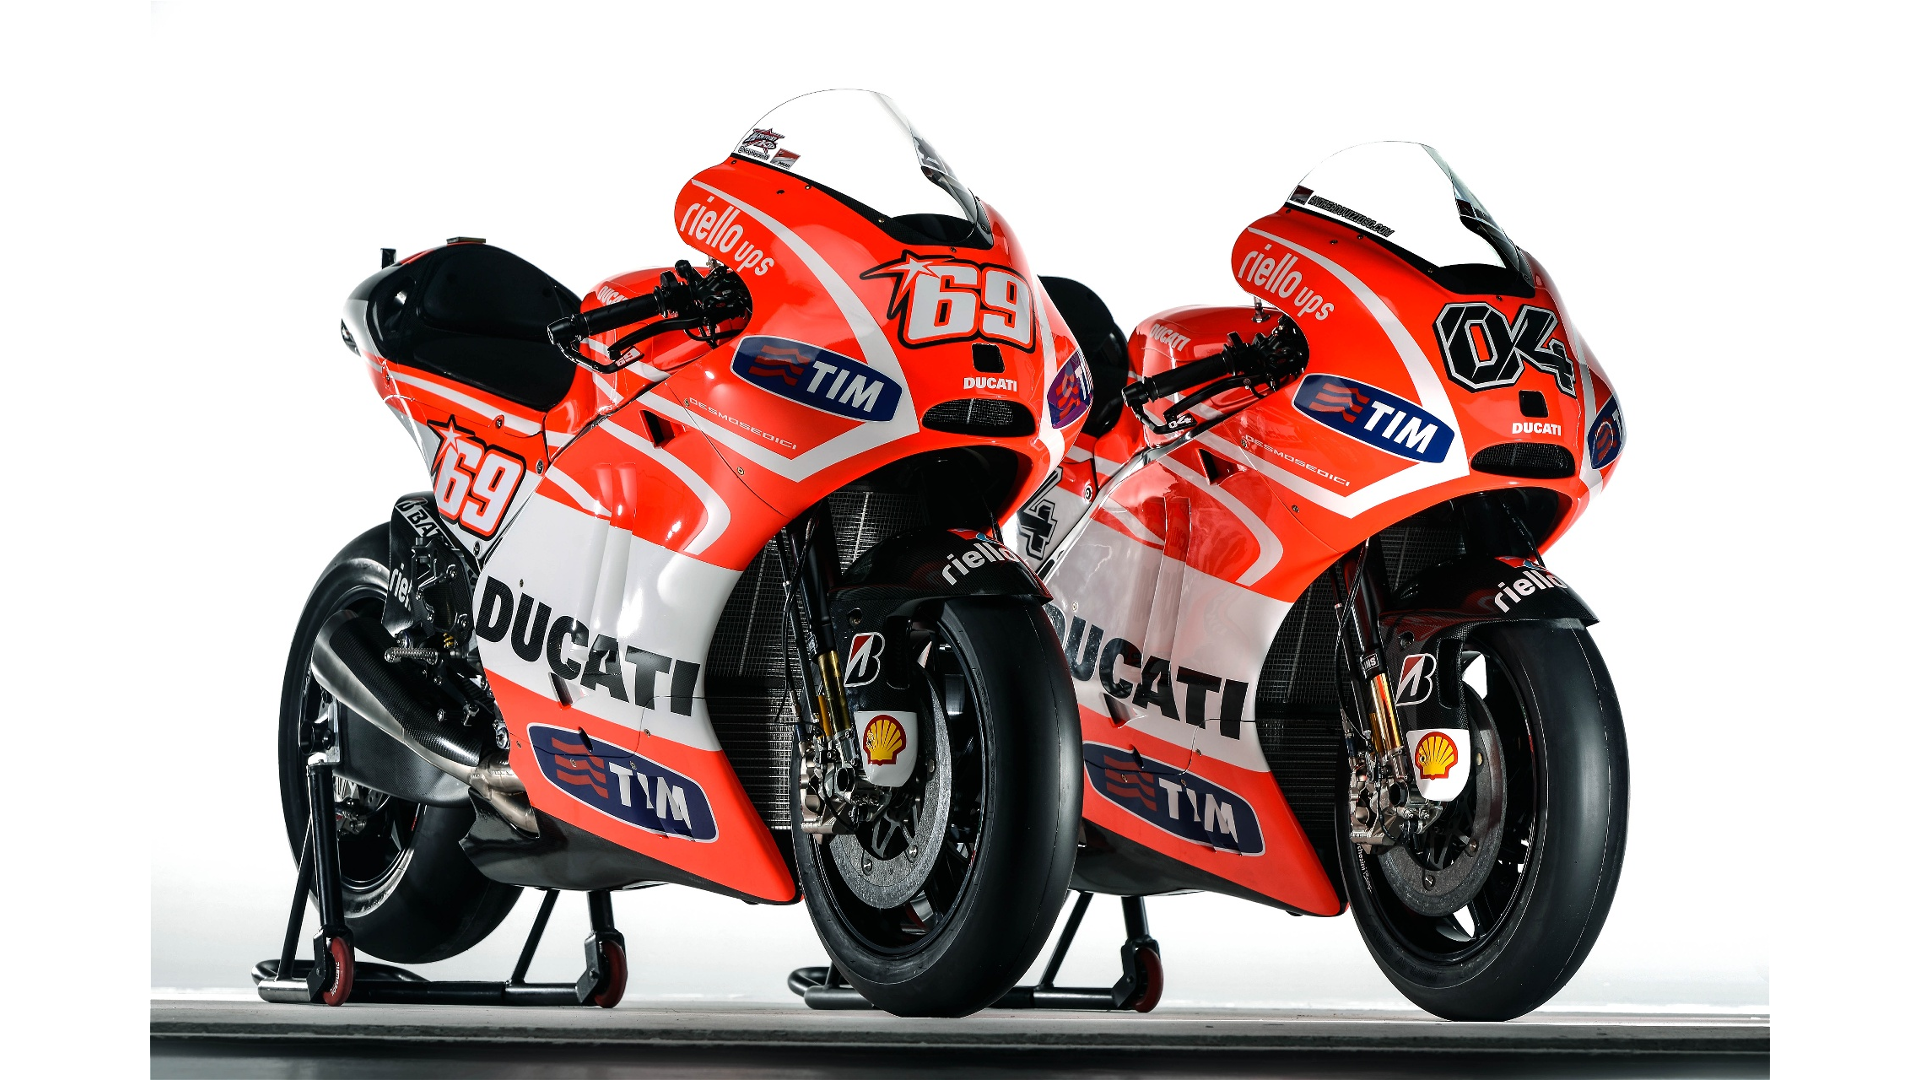 Ducati GP13 - Page 2 Resized_00036957.mediagallery_output_image_%5B1920x1080%5D-O